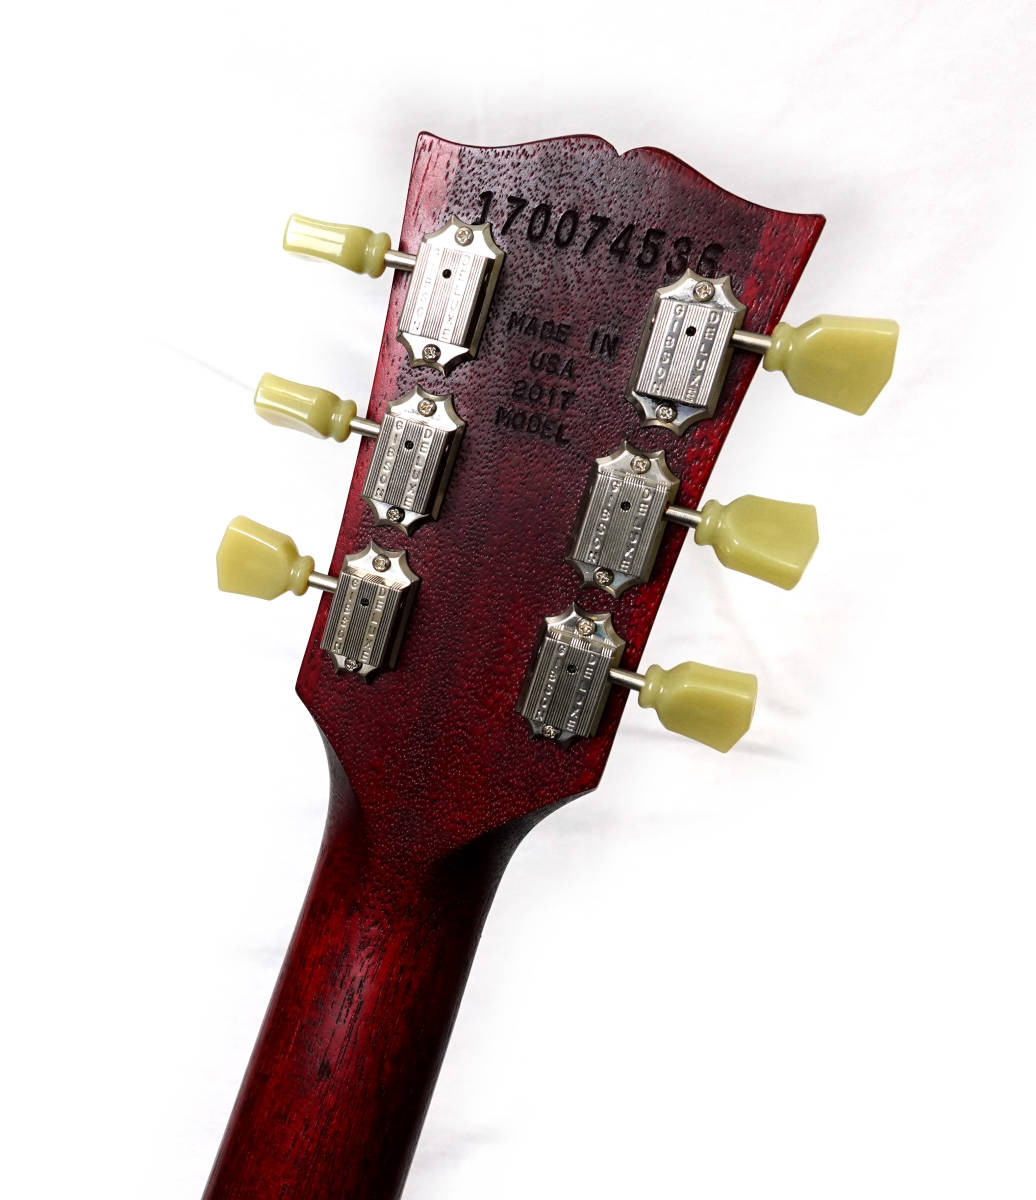 Gibson USA SG Special 2017 T Satin Cherry 中古美品_画像5